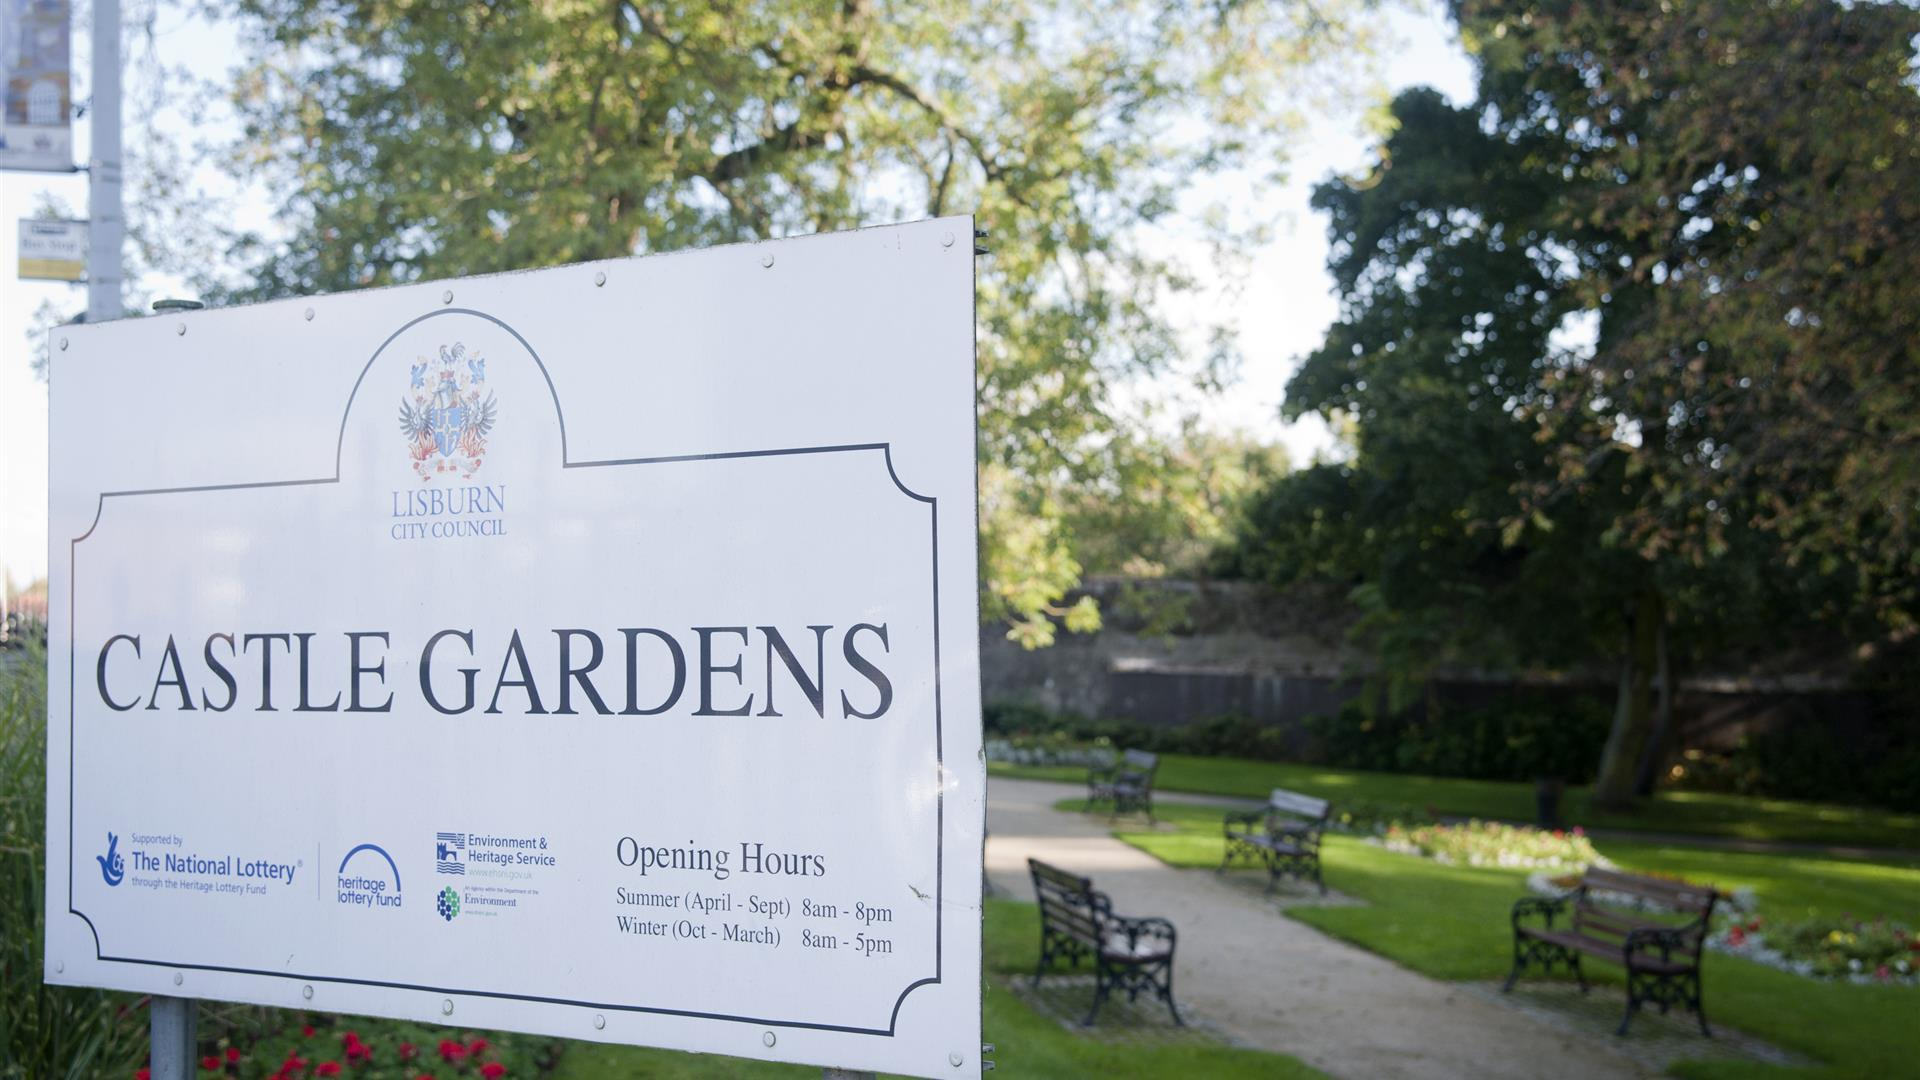 Image shows signage in the gardens with path and benches